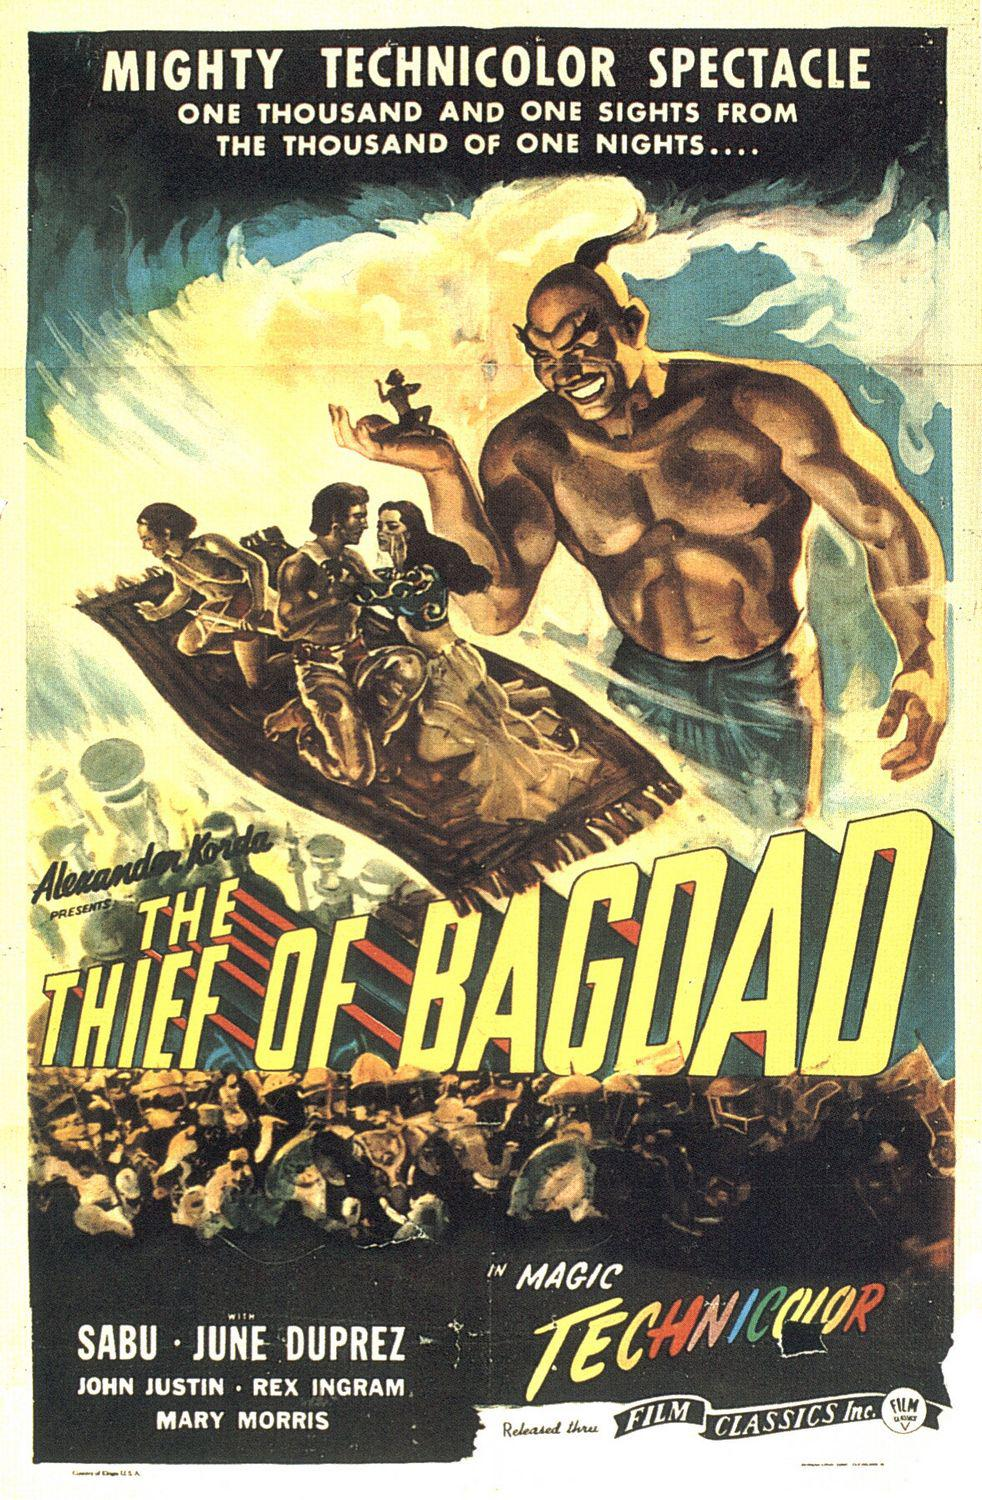 Thief of Bagdad - Ladro di Bagdad